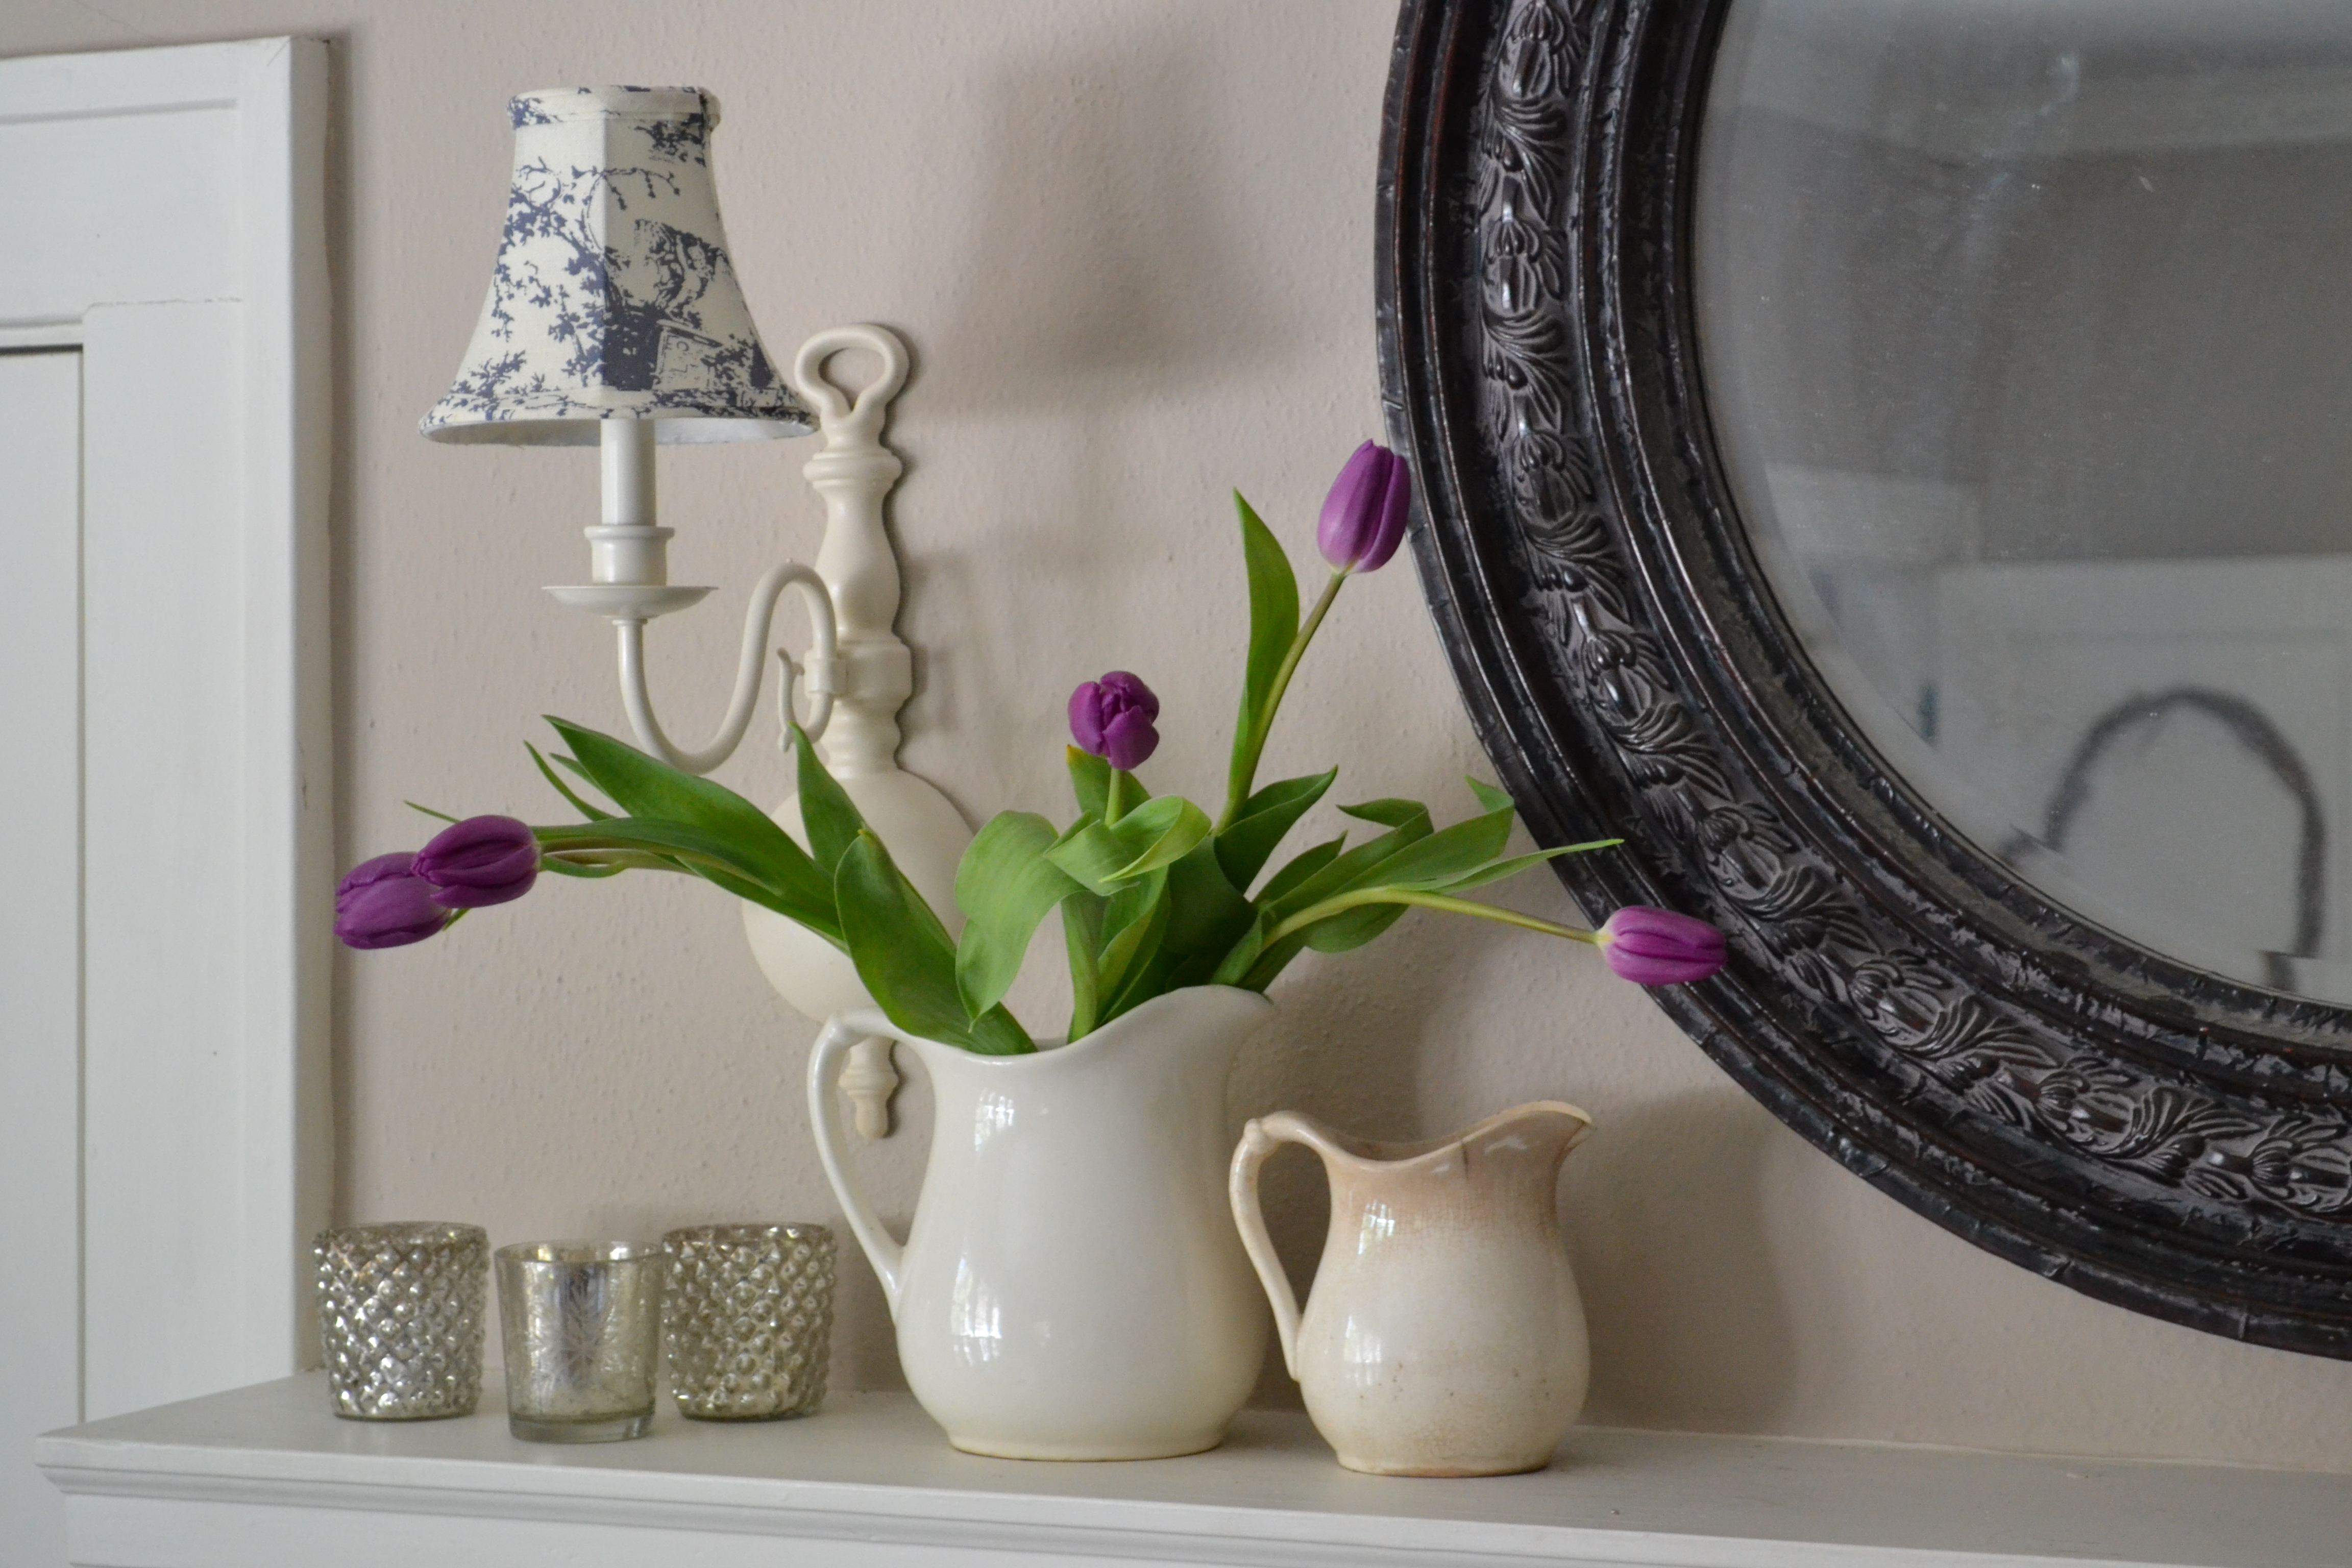 purple tulips & a Spring mantel